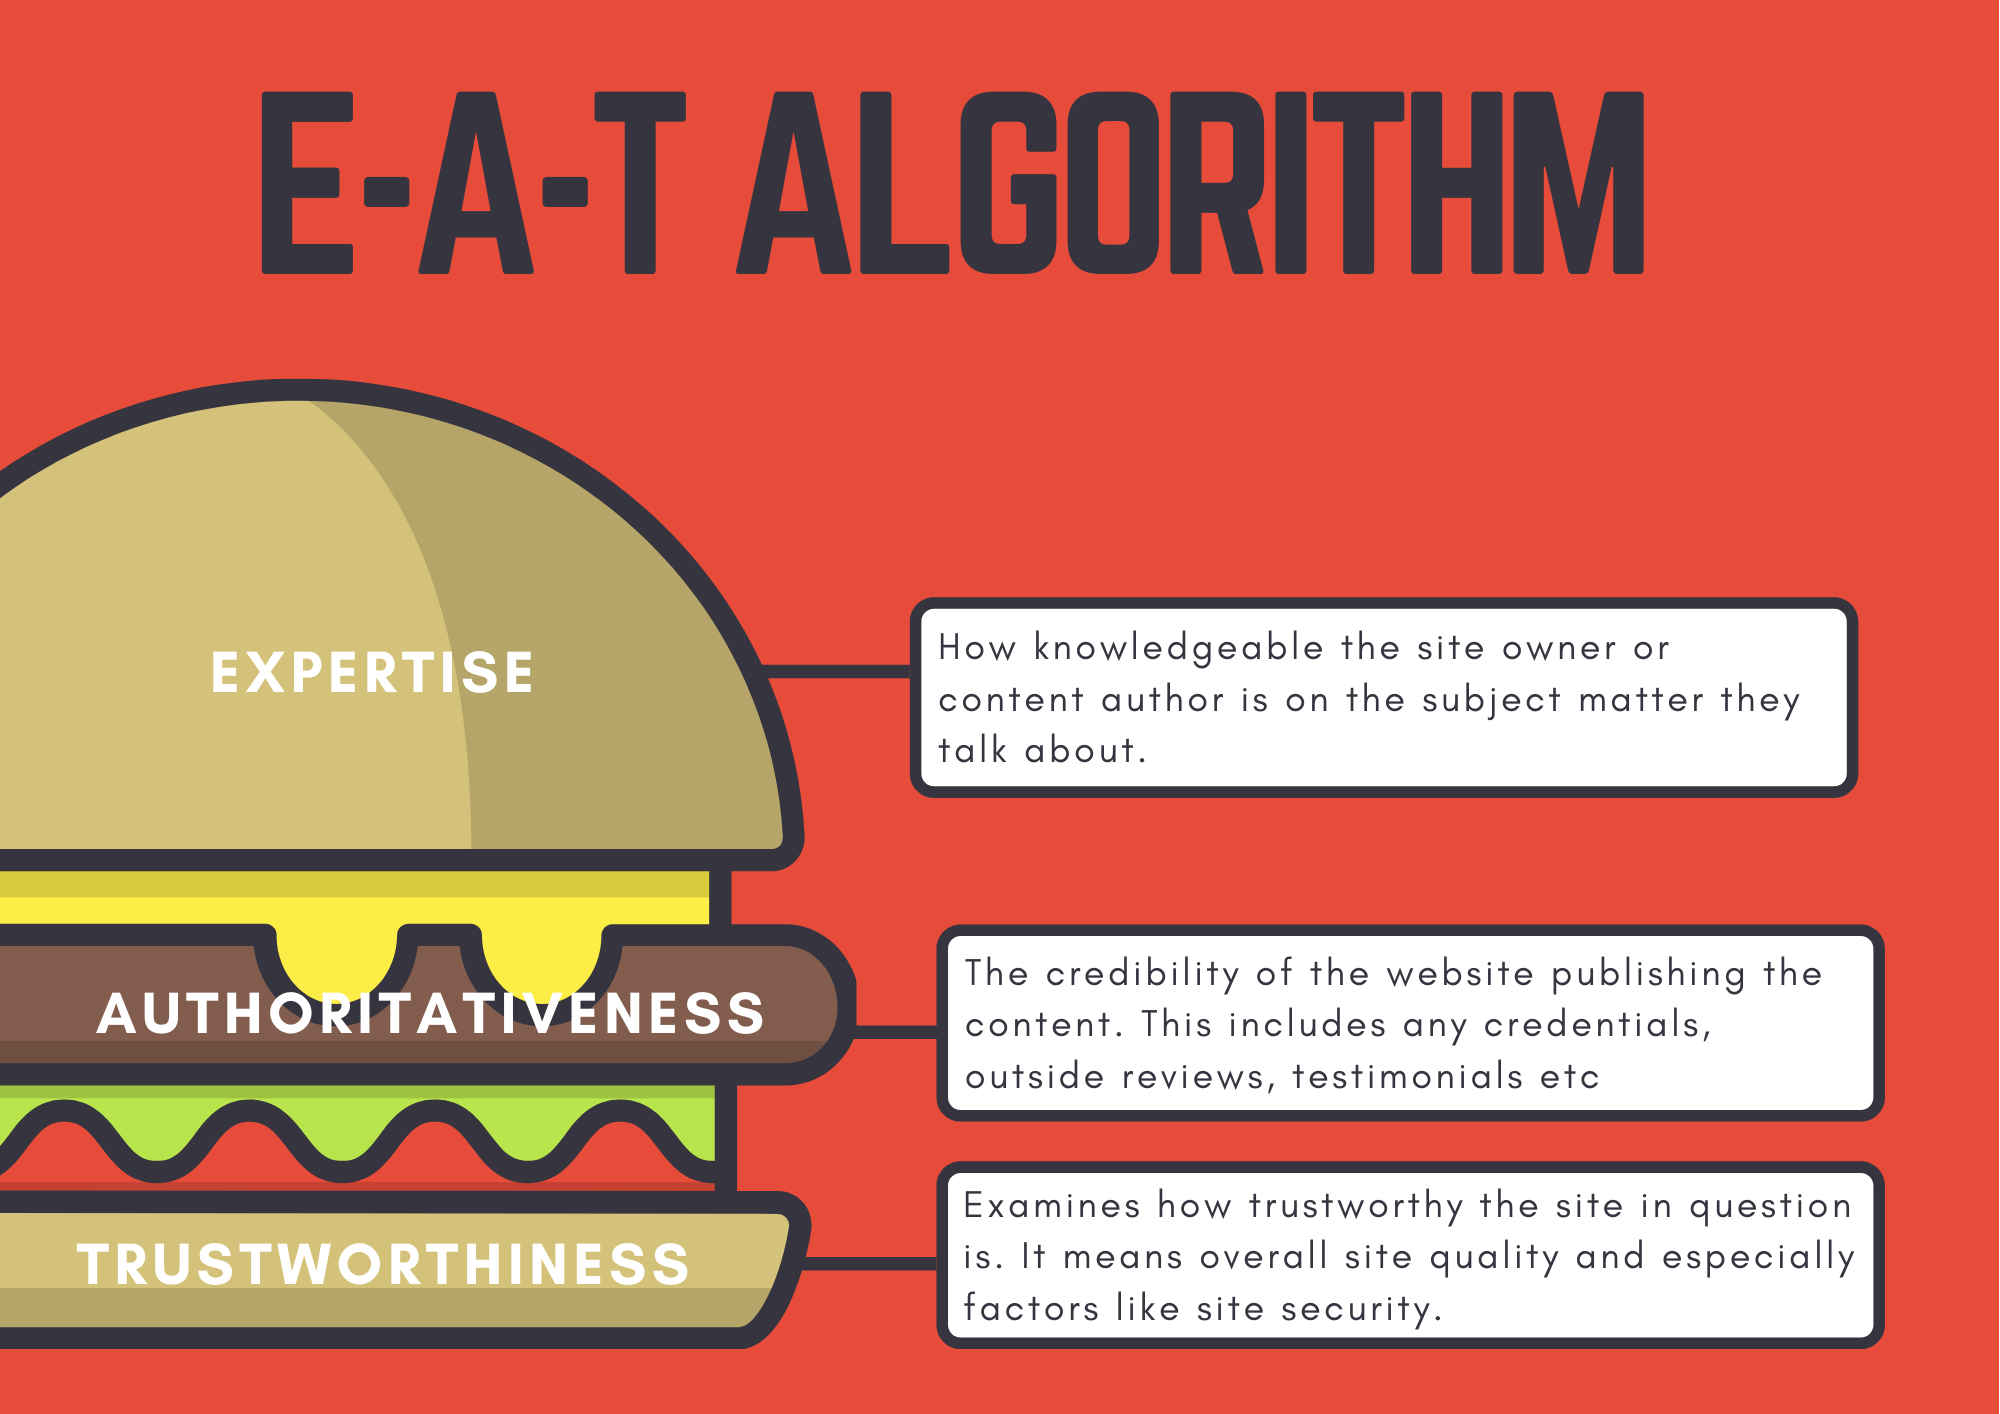 EAT Algorithm infographic